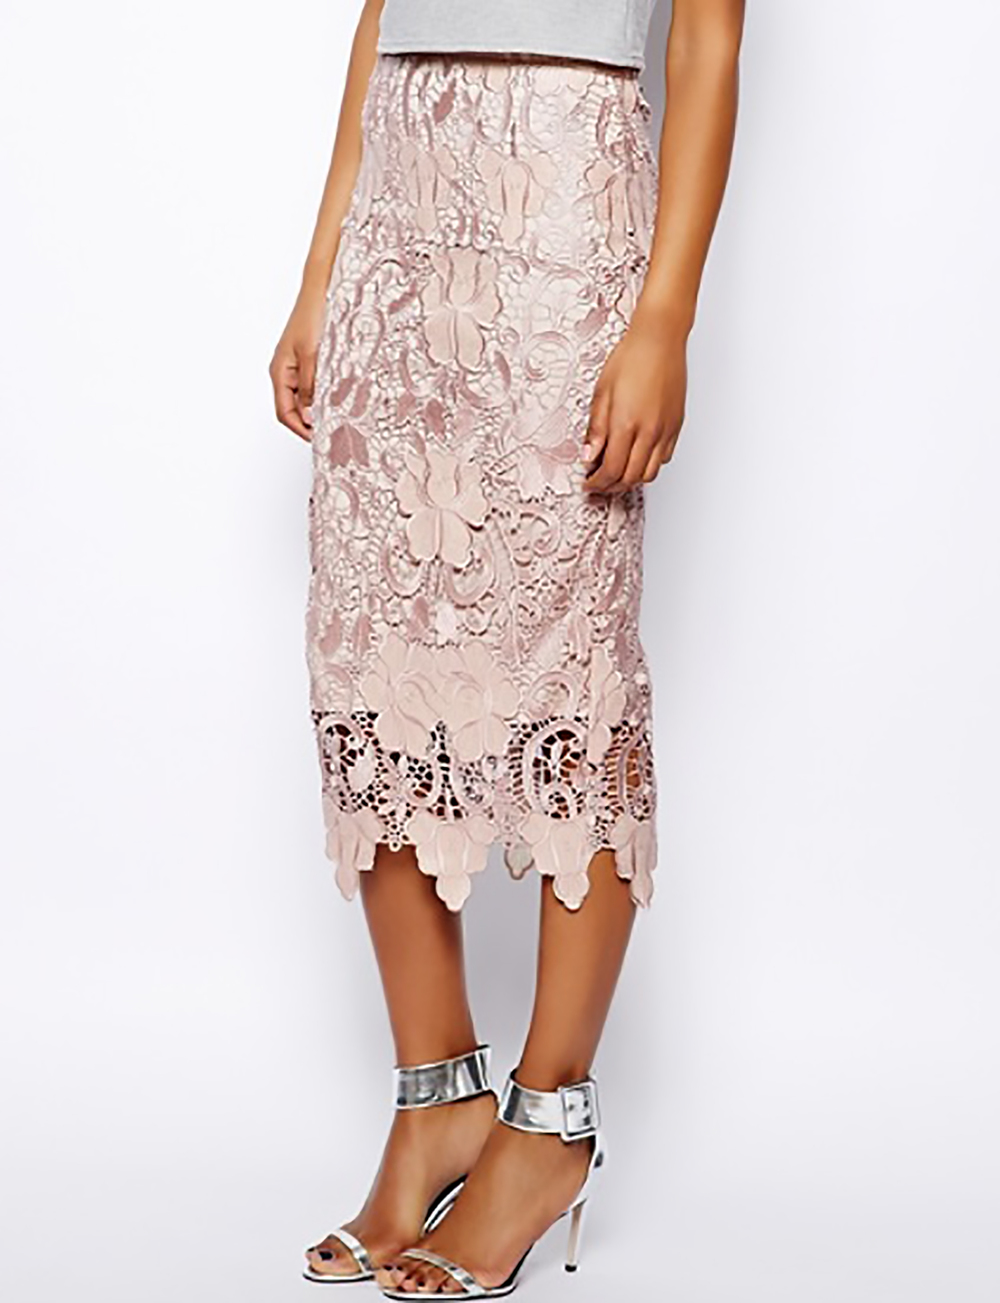 Asos river island lace pencil skirt with scalloped hem slip 1500.jpg